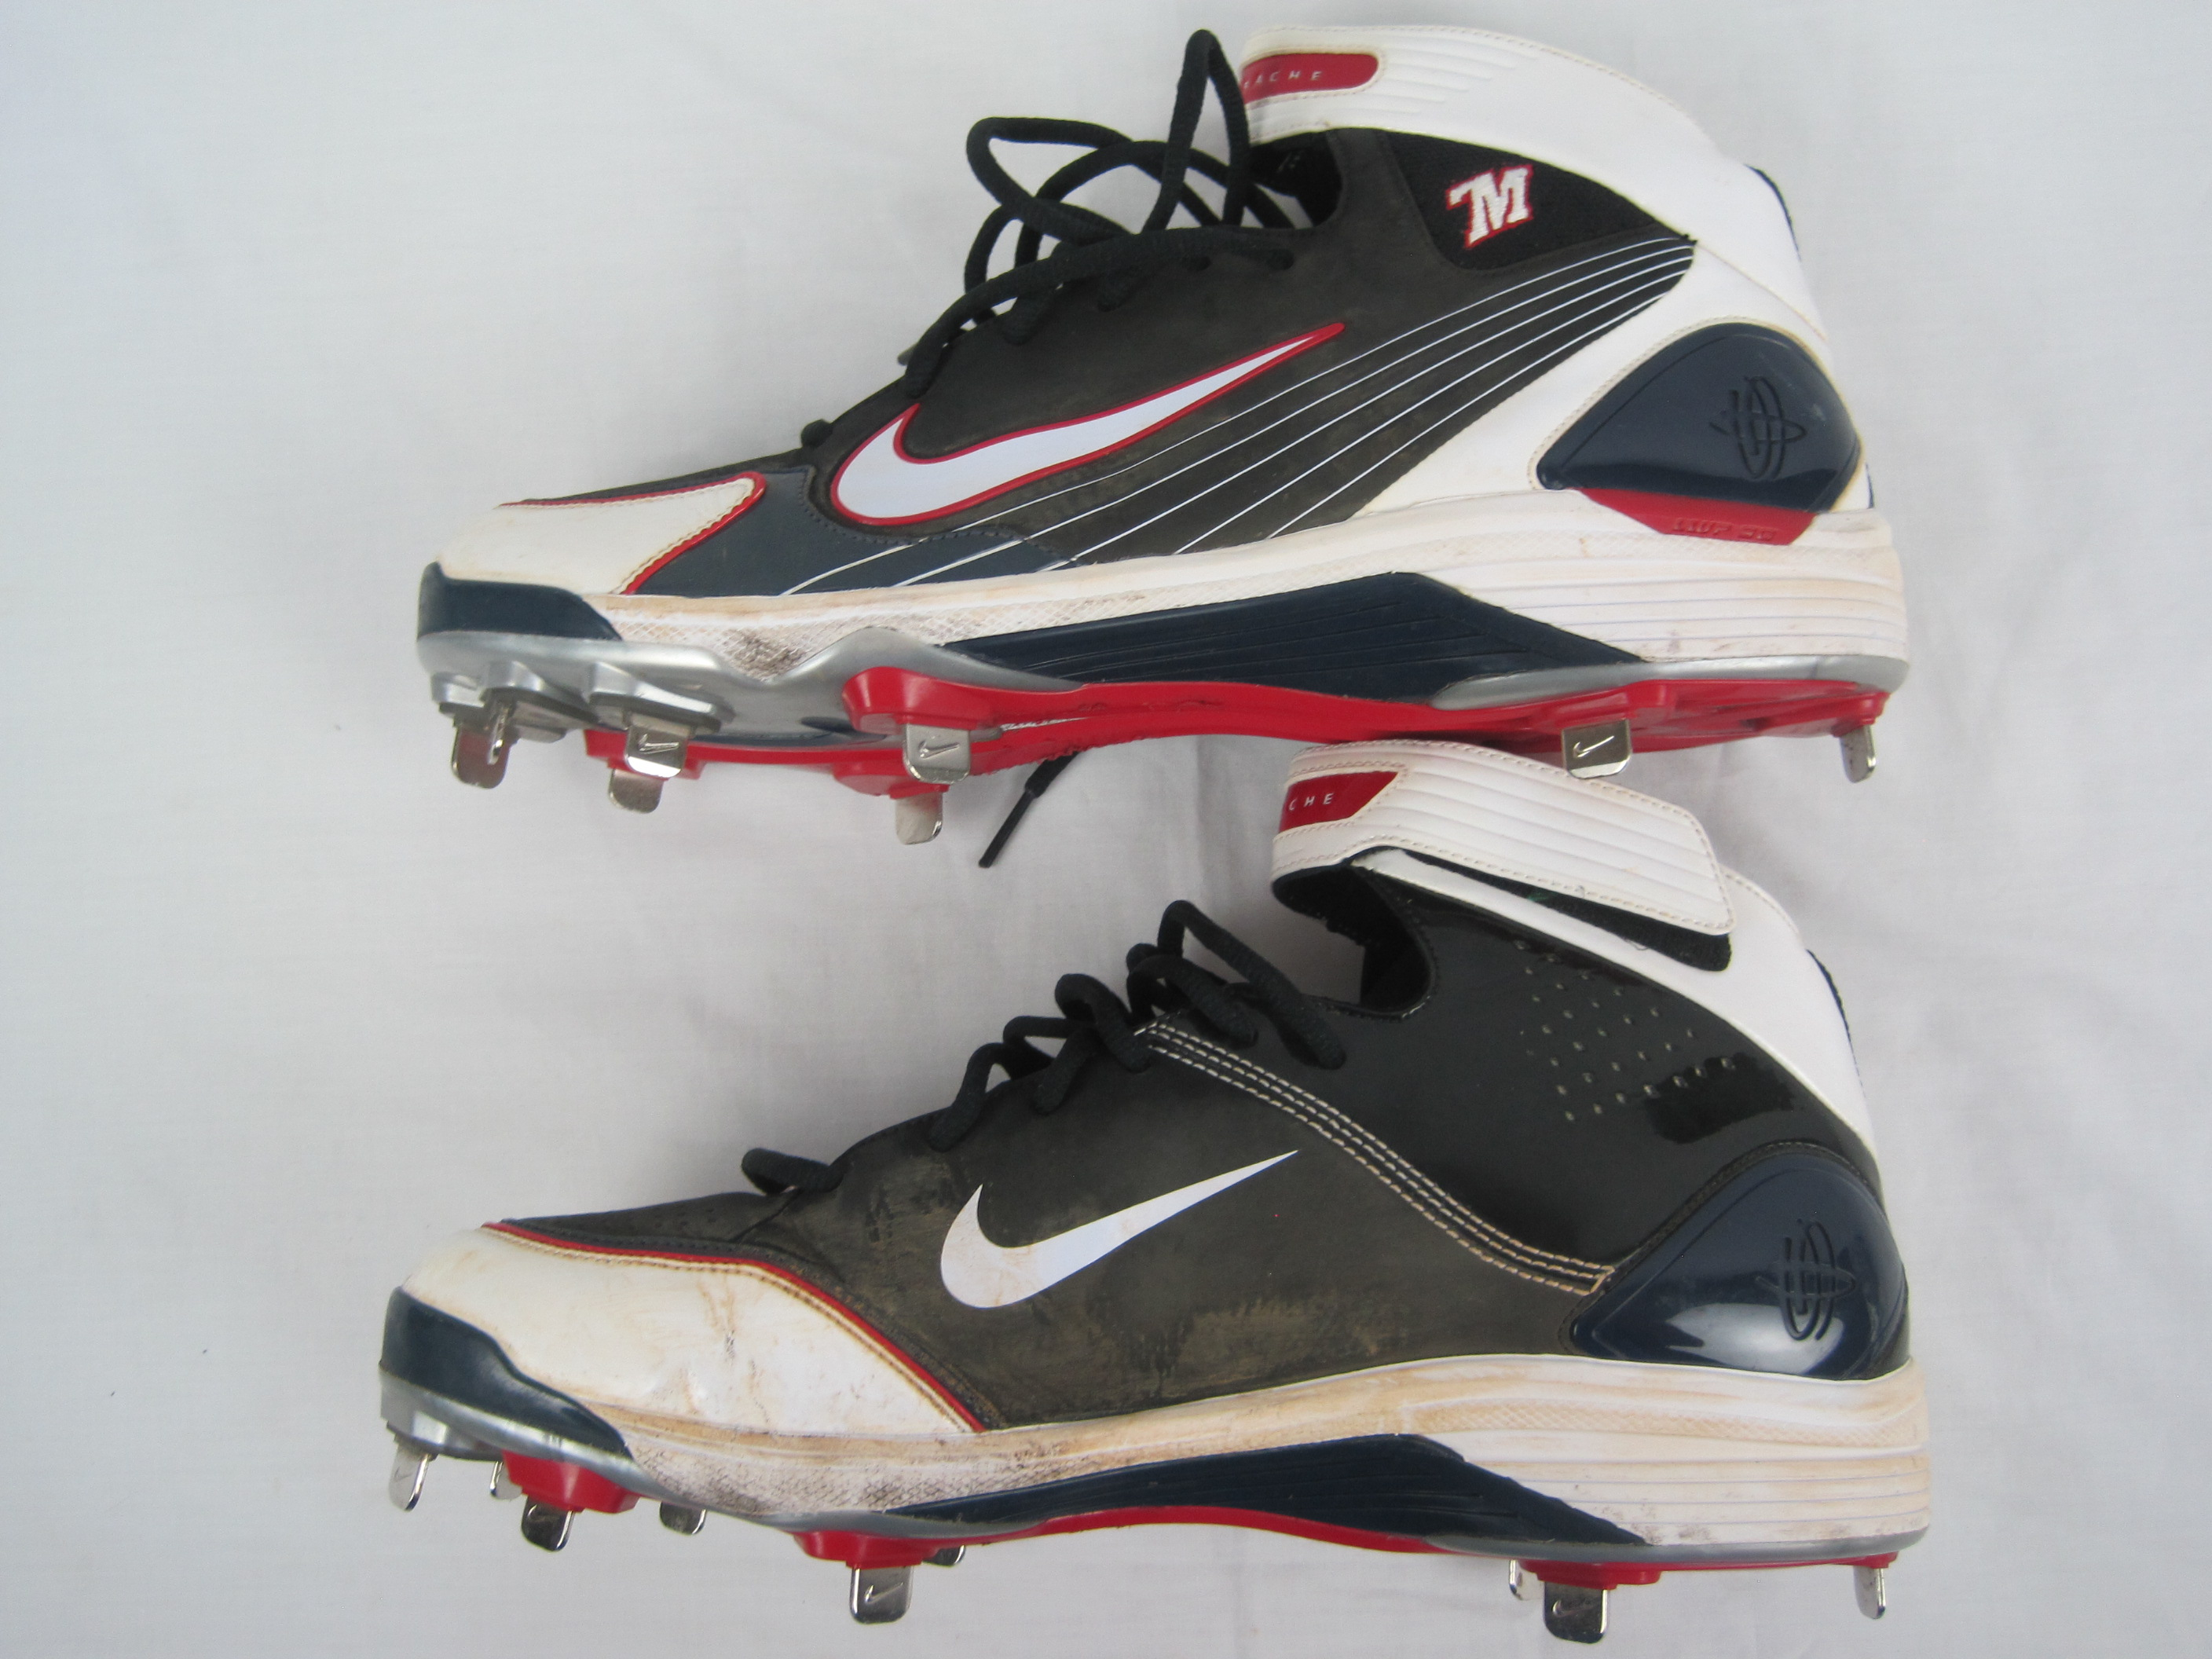 how to return used nike cleats